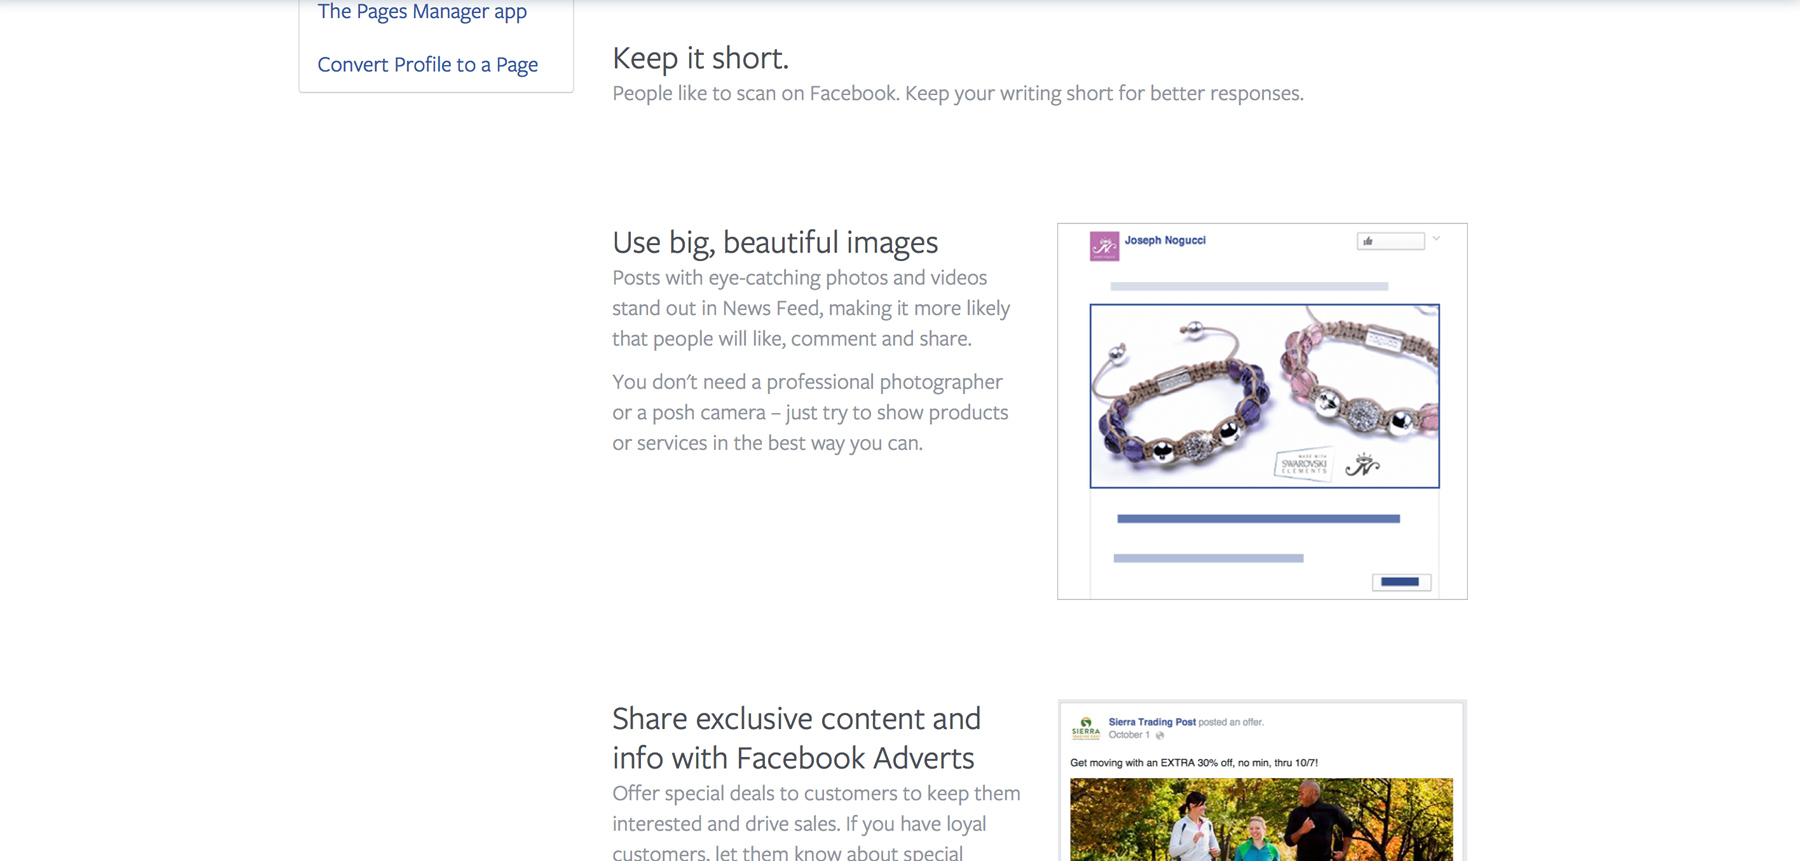 How to write effective posts for Facebook